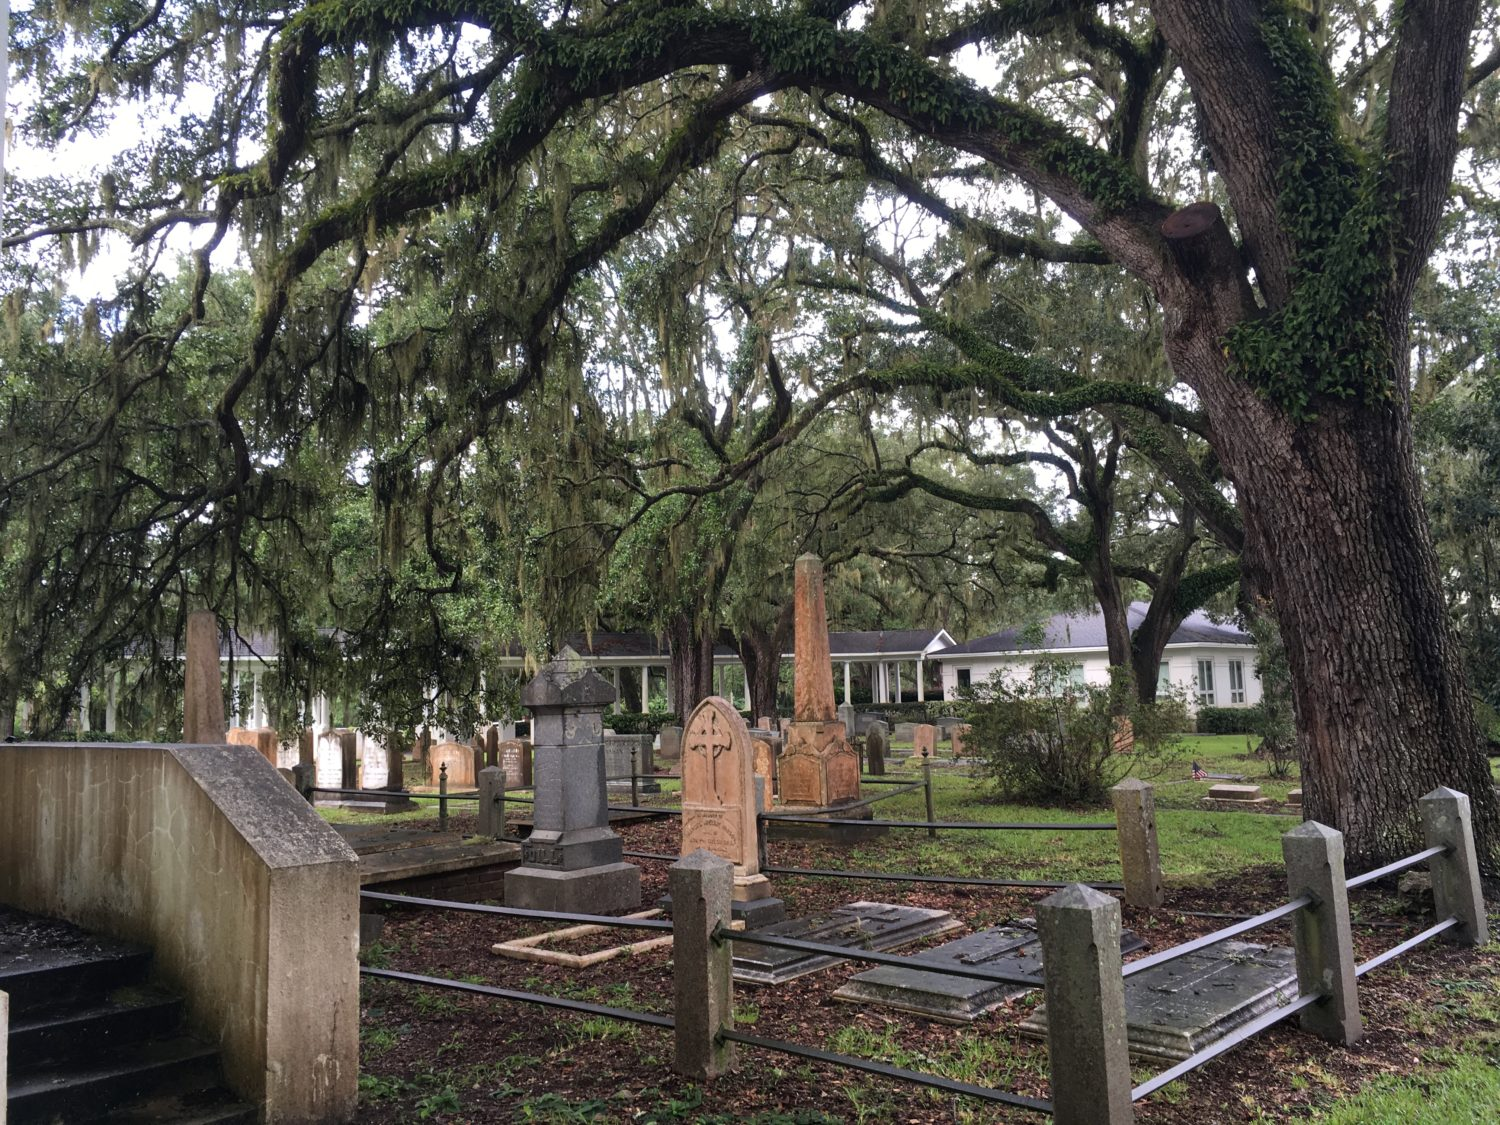 St. James Episcopal Church graveyard. The obelisk of the McLeods is in the background. I took this photo on my first trip. Can you believe I couldn't find Josiah McLeod?